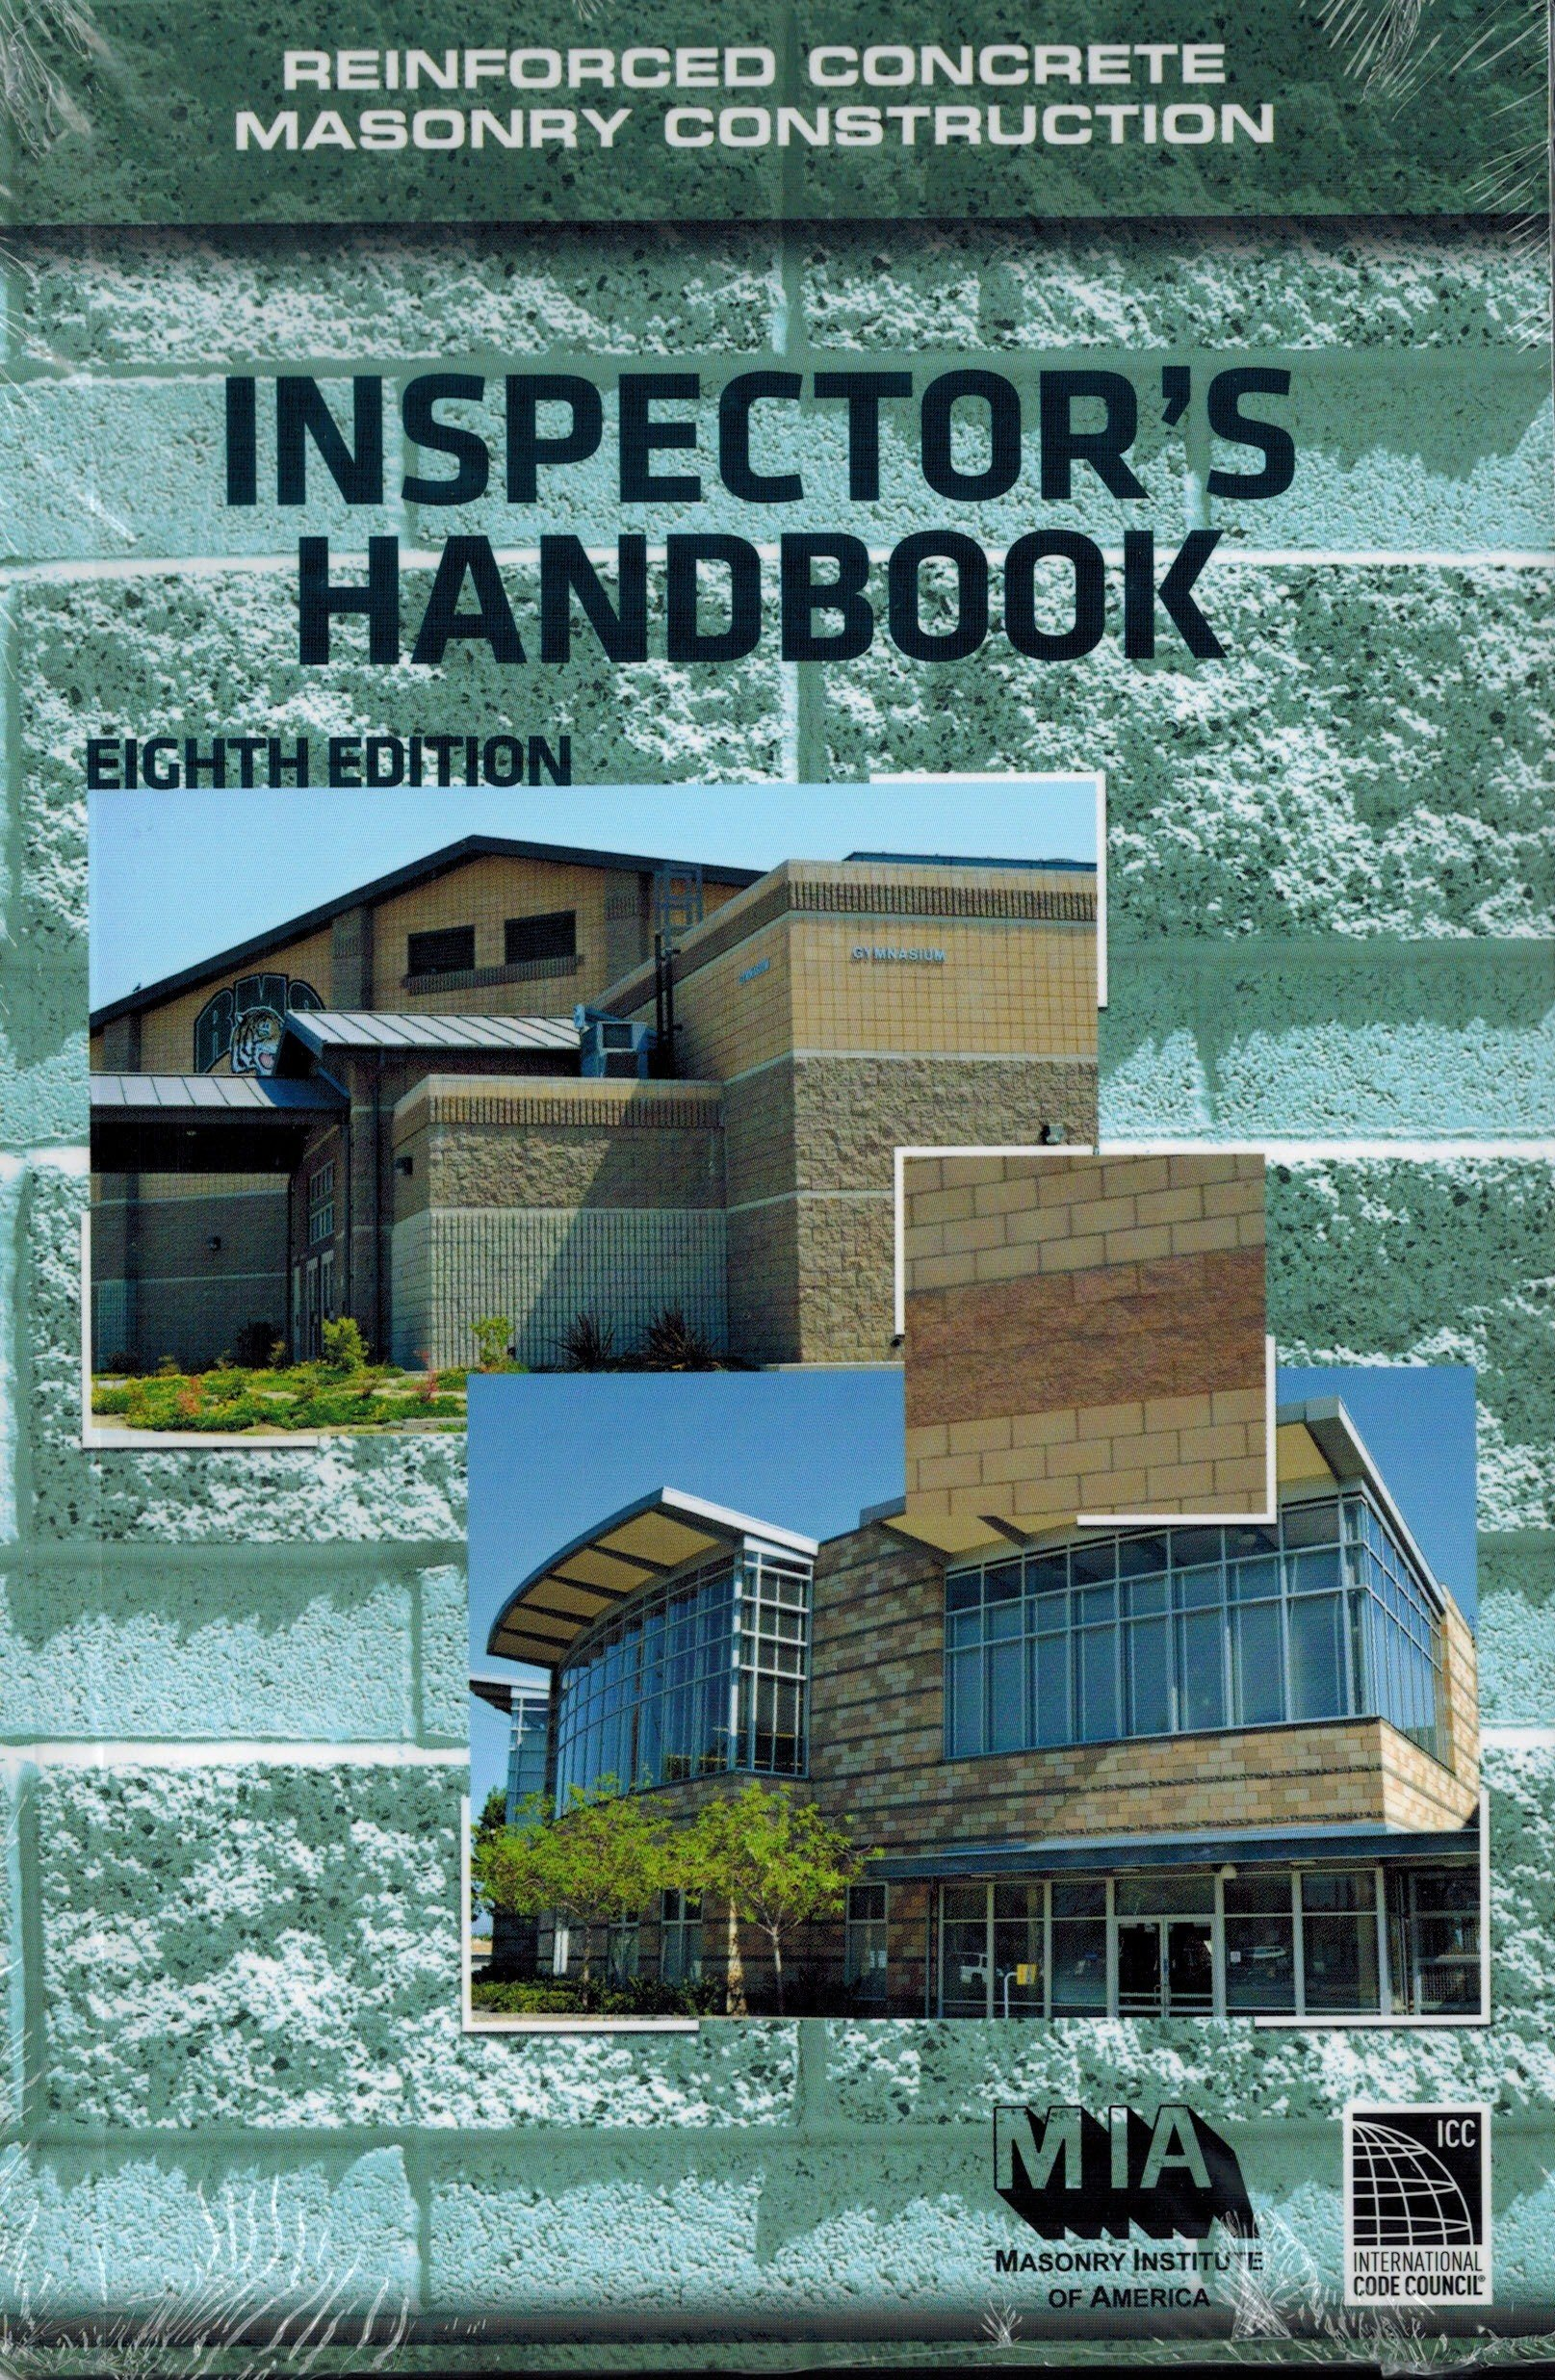 Reinforced concrete masonry construction inspectors handbook 8th reinforced concrete masonry construction inspectors handbook 8th edition 9780940116566 amazon books fandeluxe Image collections